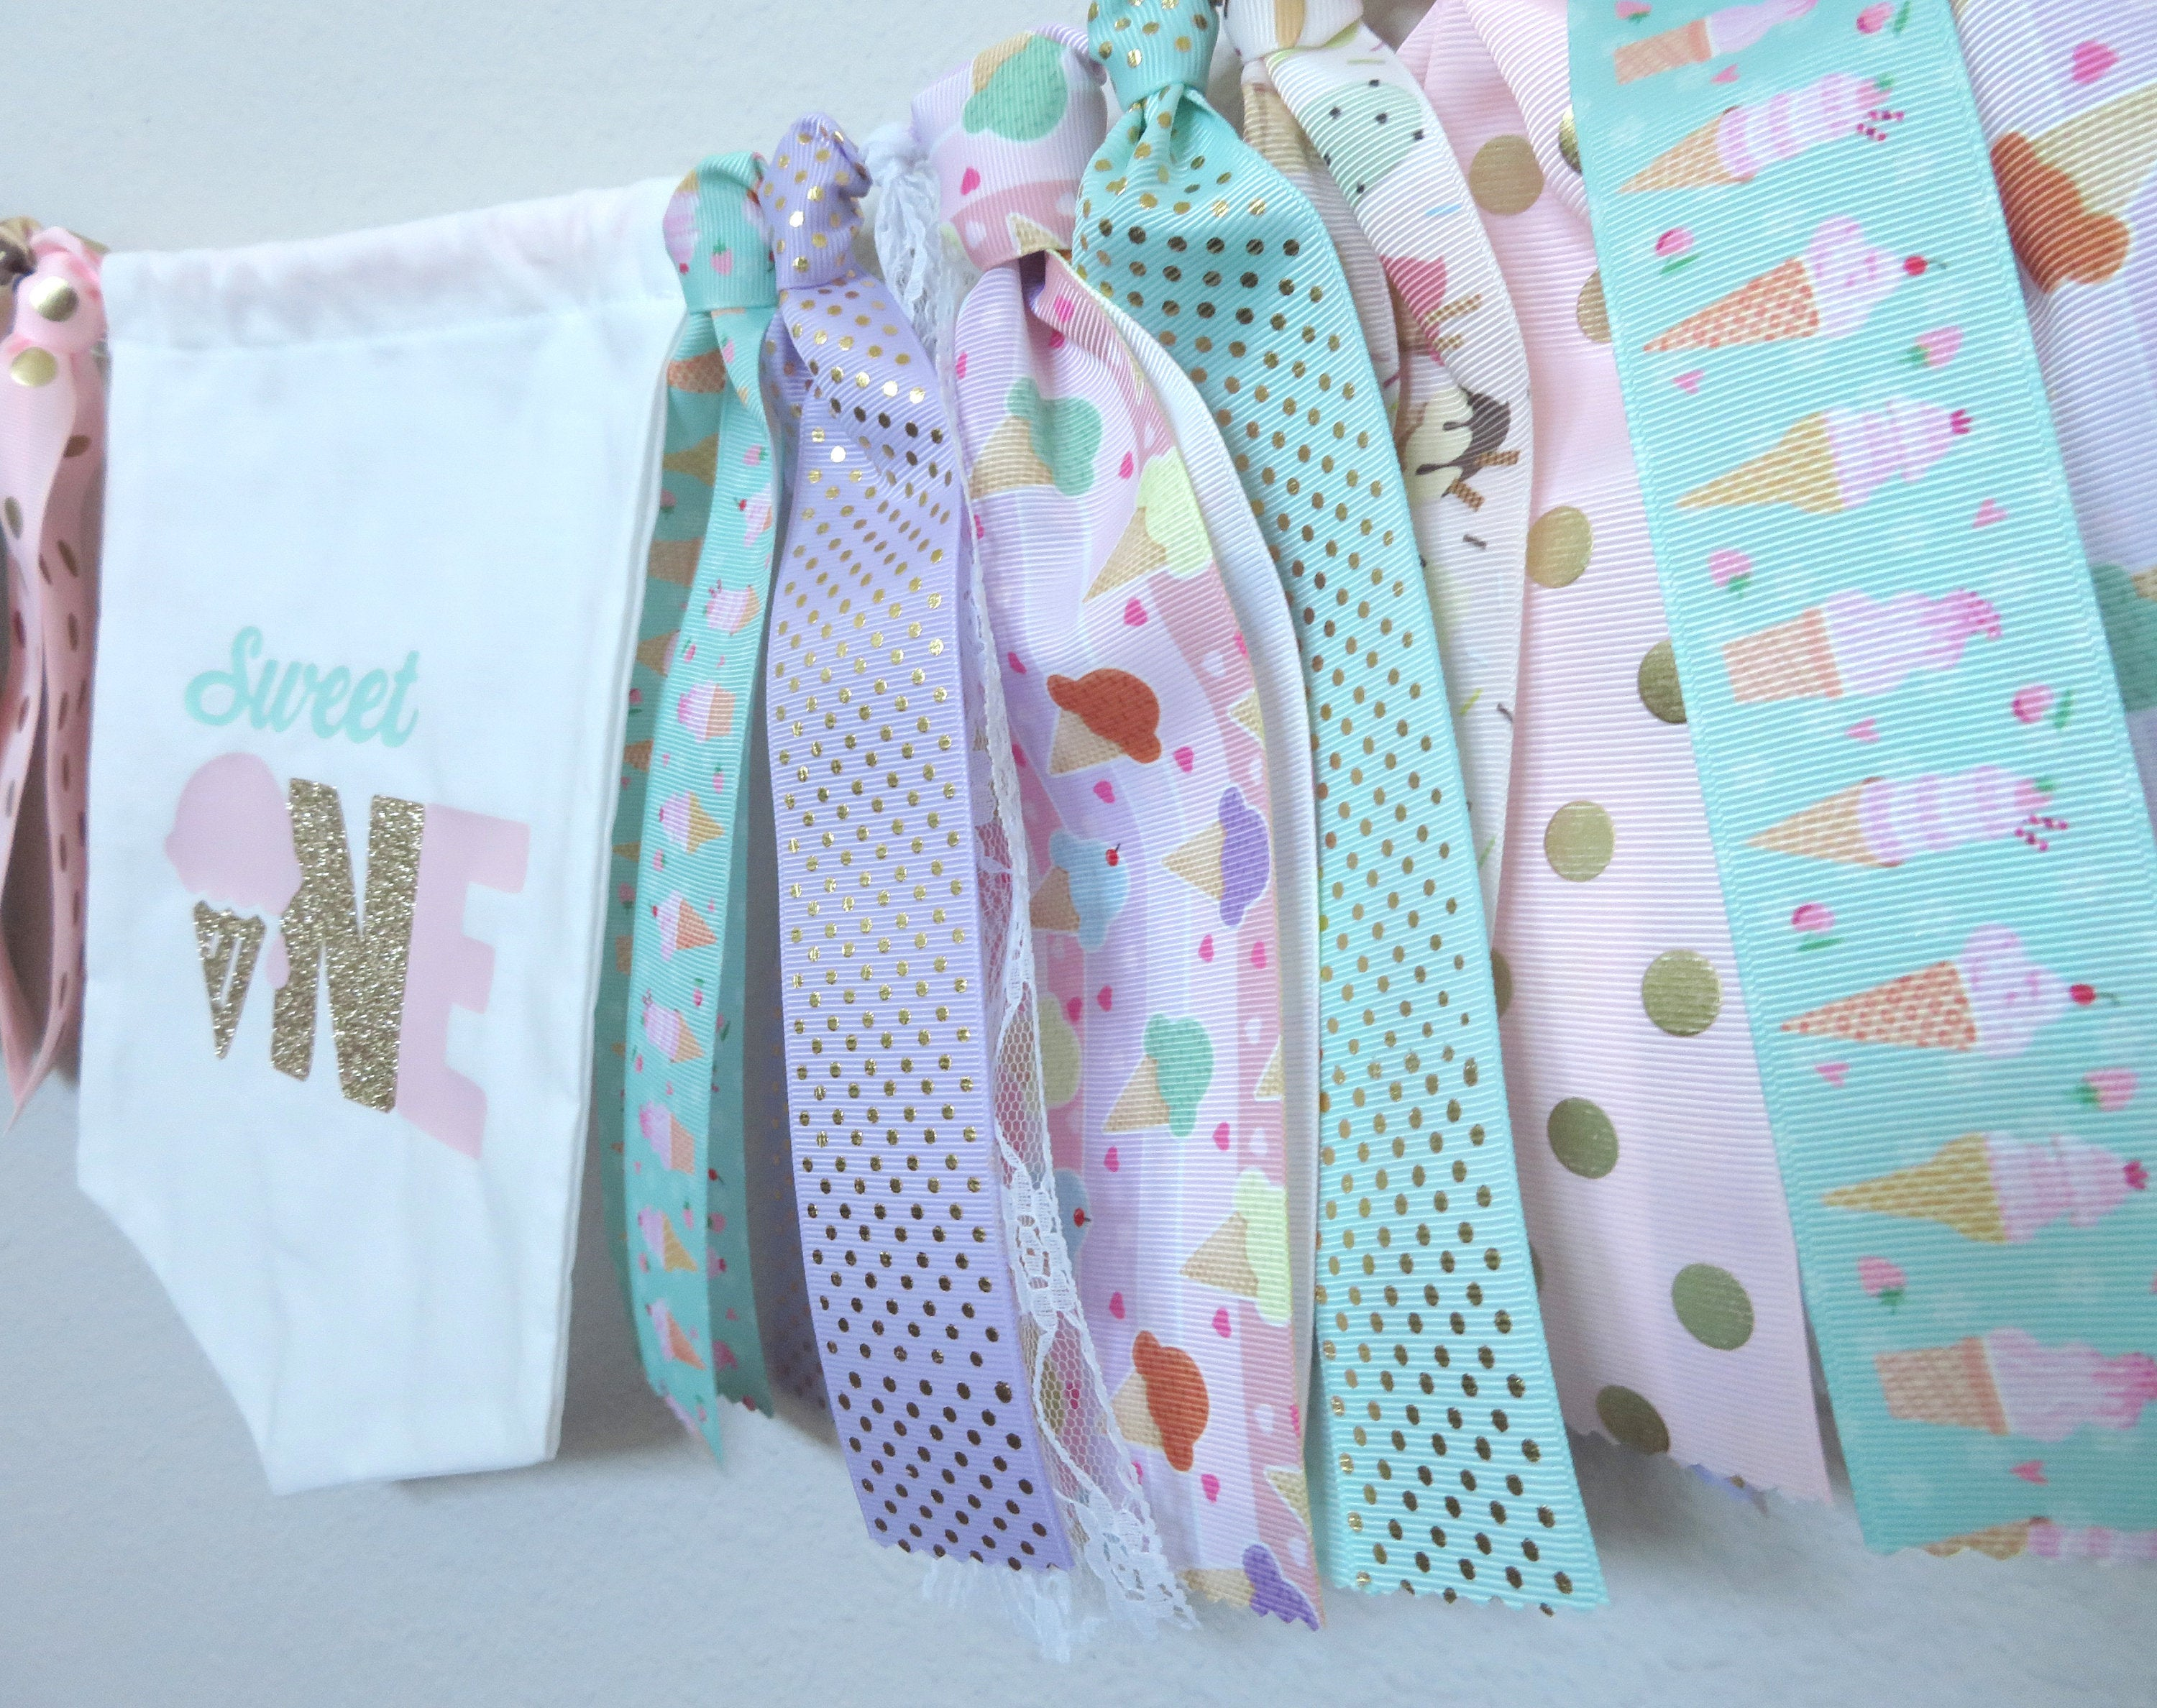 Ice Cream High Chair Banner for First Birthday -sweet one banner, ice cream pennant, ice cream bunting, sweet one 1st bday party deco